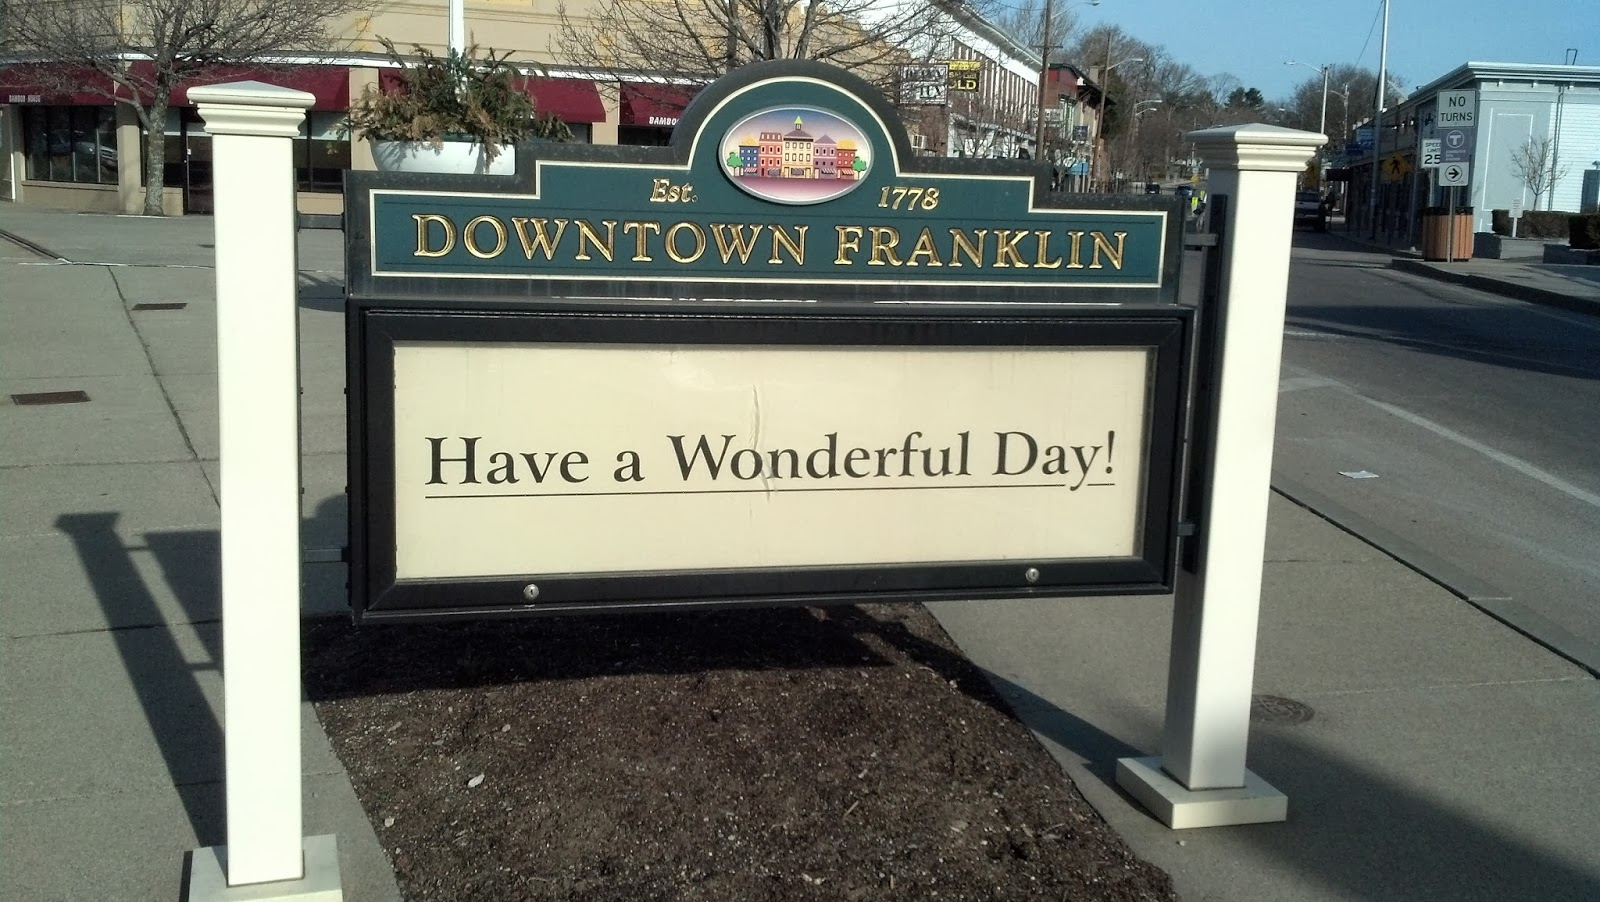 Downtown Franklin on a warmer day